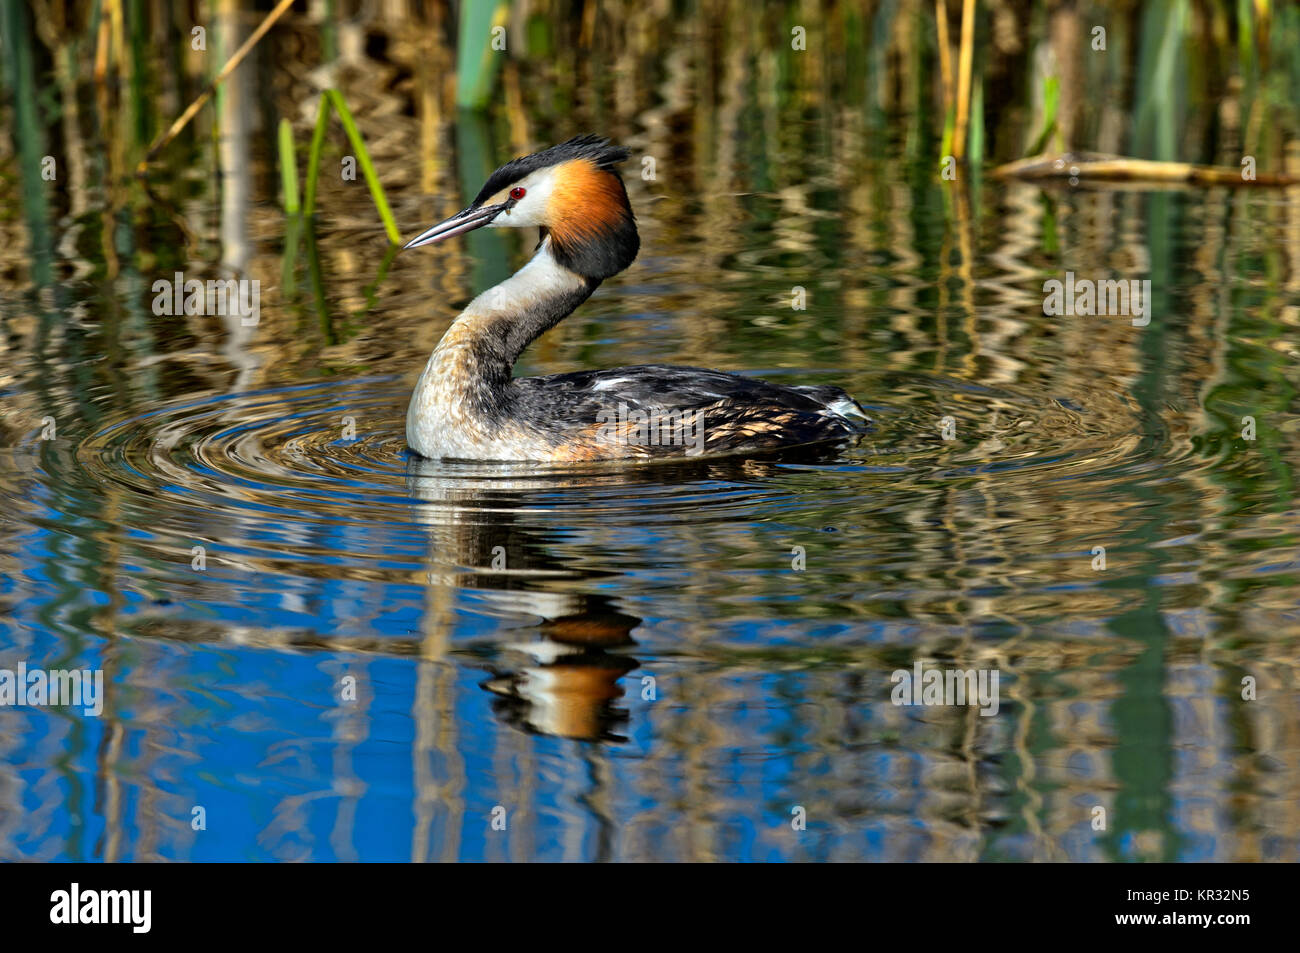 Great crested grebe (Podiceps cristatus), Podicipedidae family, Kinderdijk, Netherlands - Stock Image